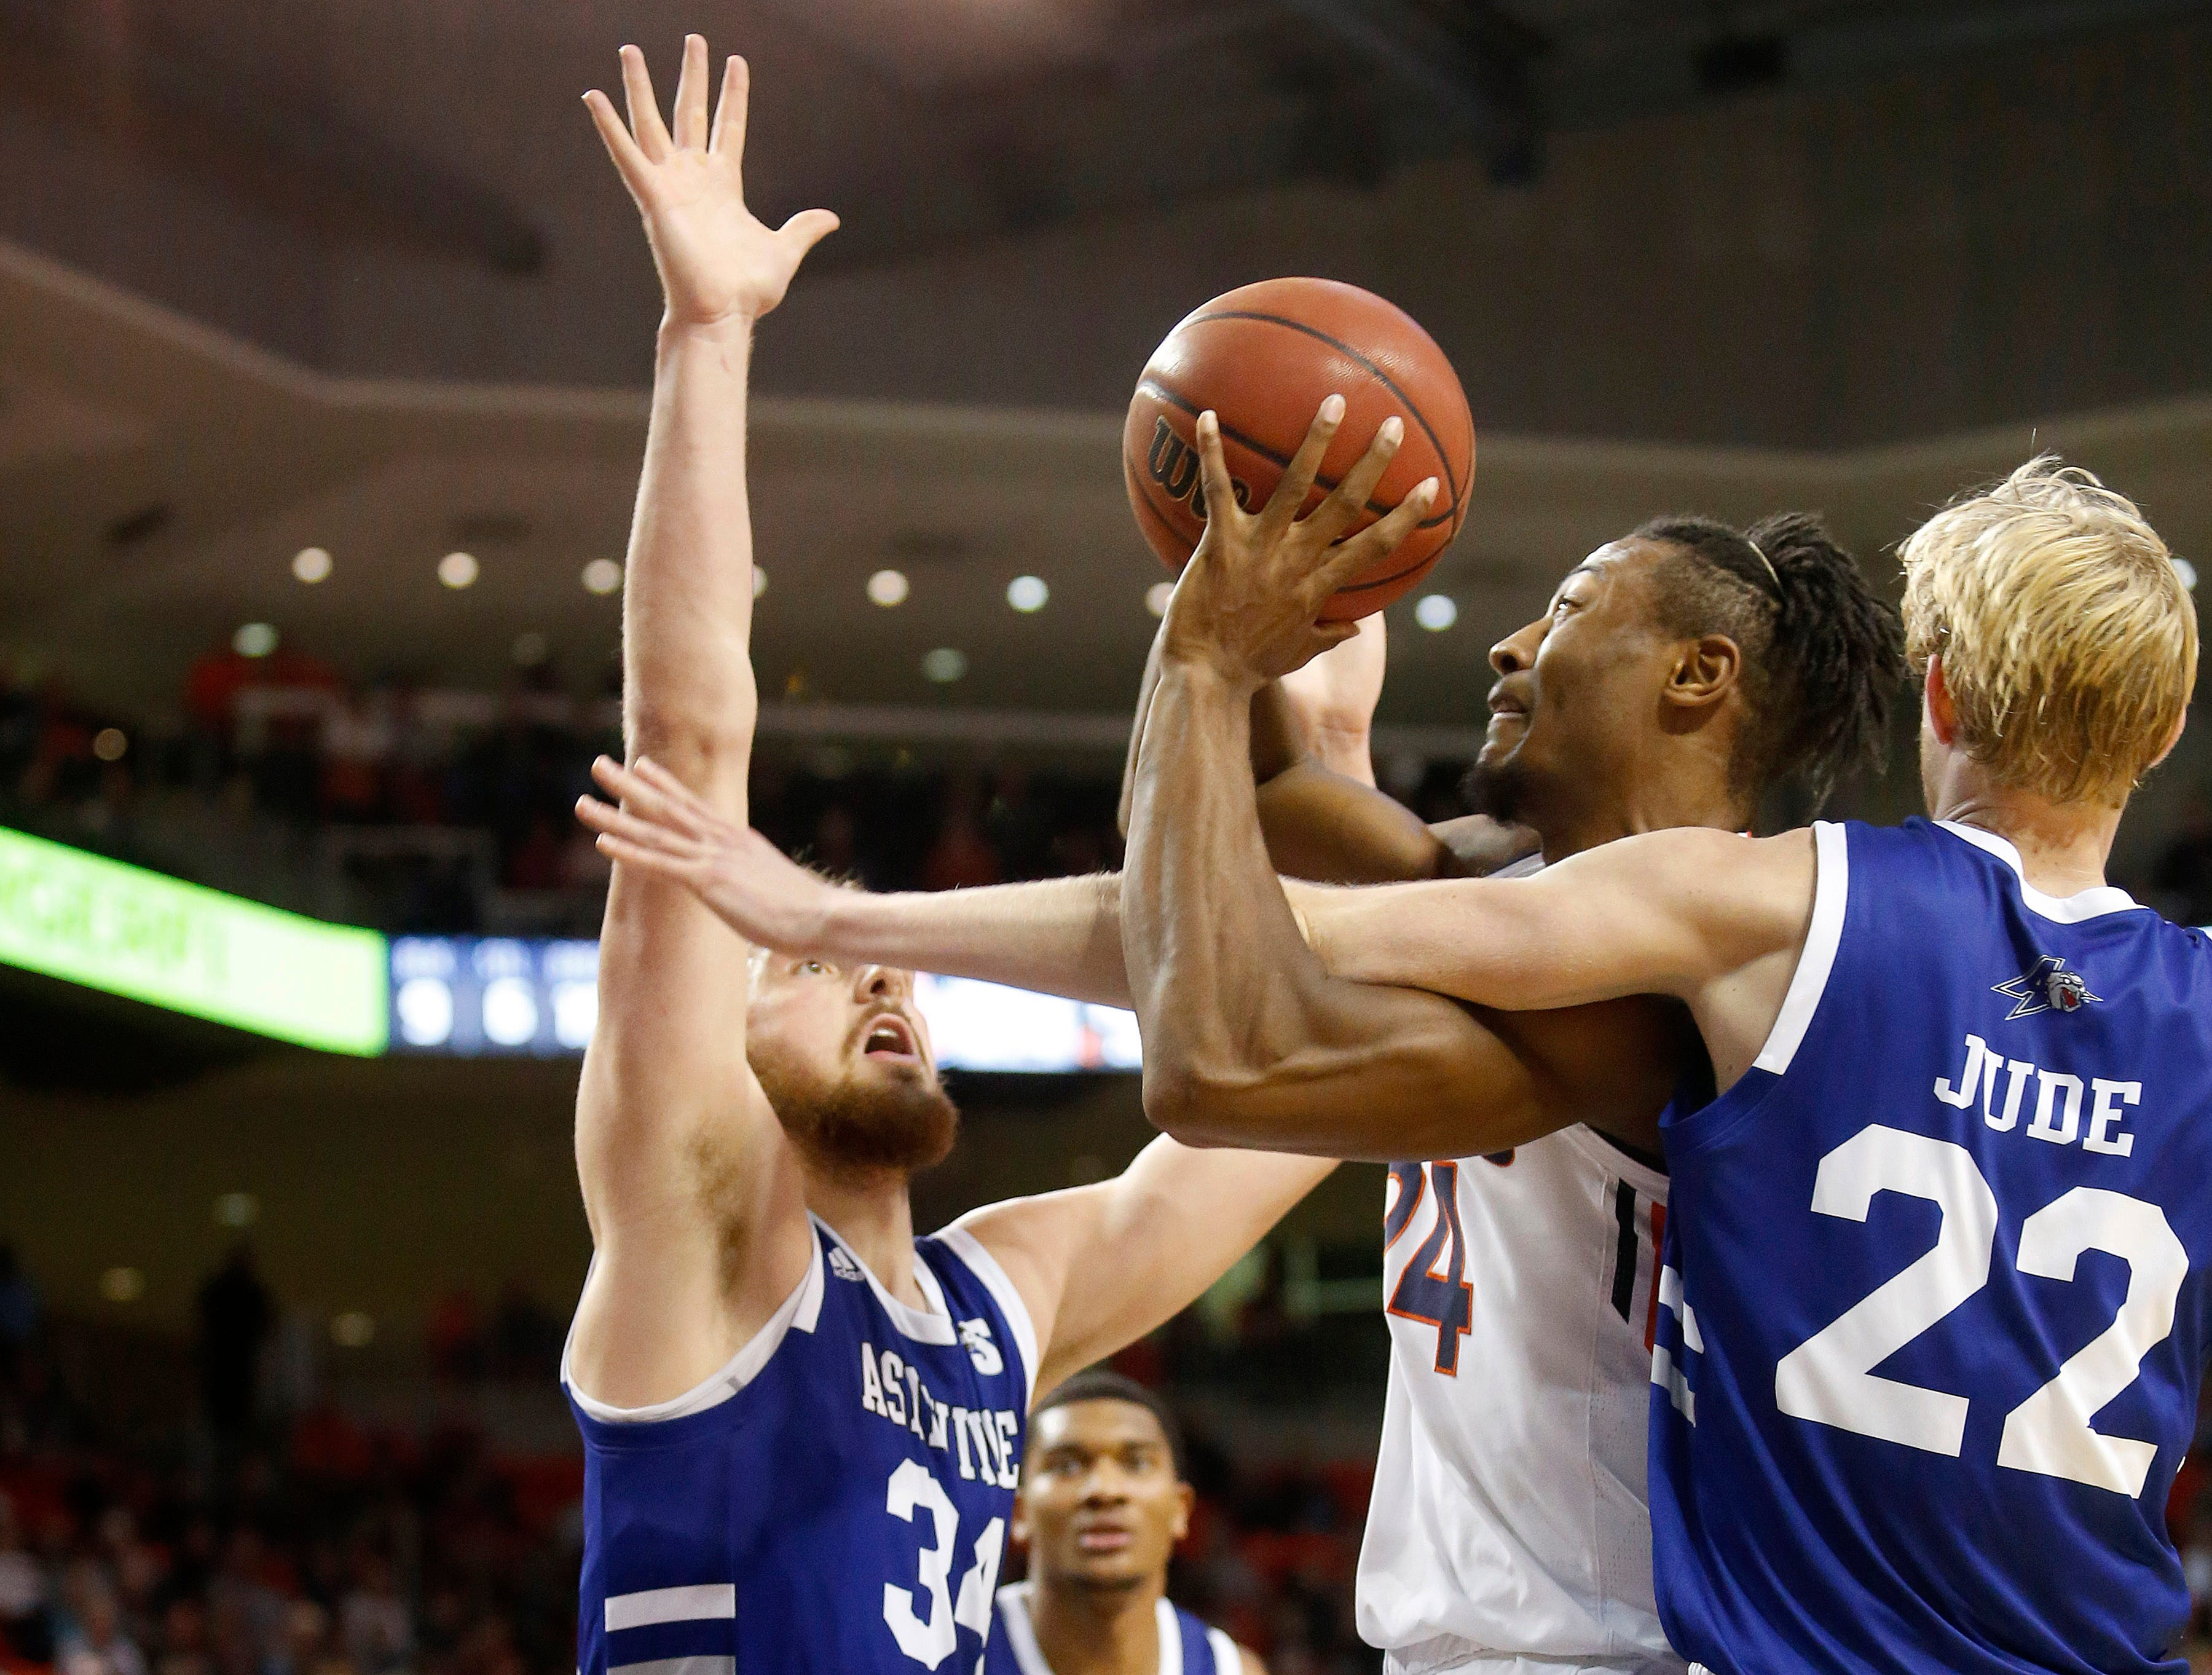 Dec 4, 2018; Auburn, AL, USA; Auburn Tigers forward Anfernee McLemore (24) is fouled by UNC-Asheville Bulldogs forward Coty Jude (22) during the second half at Auburn Arena. Mandatory Credit: John Reed-USA TODAY Sports